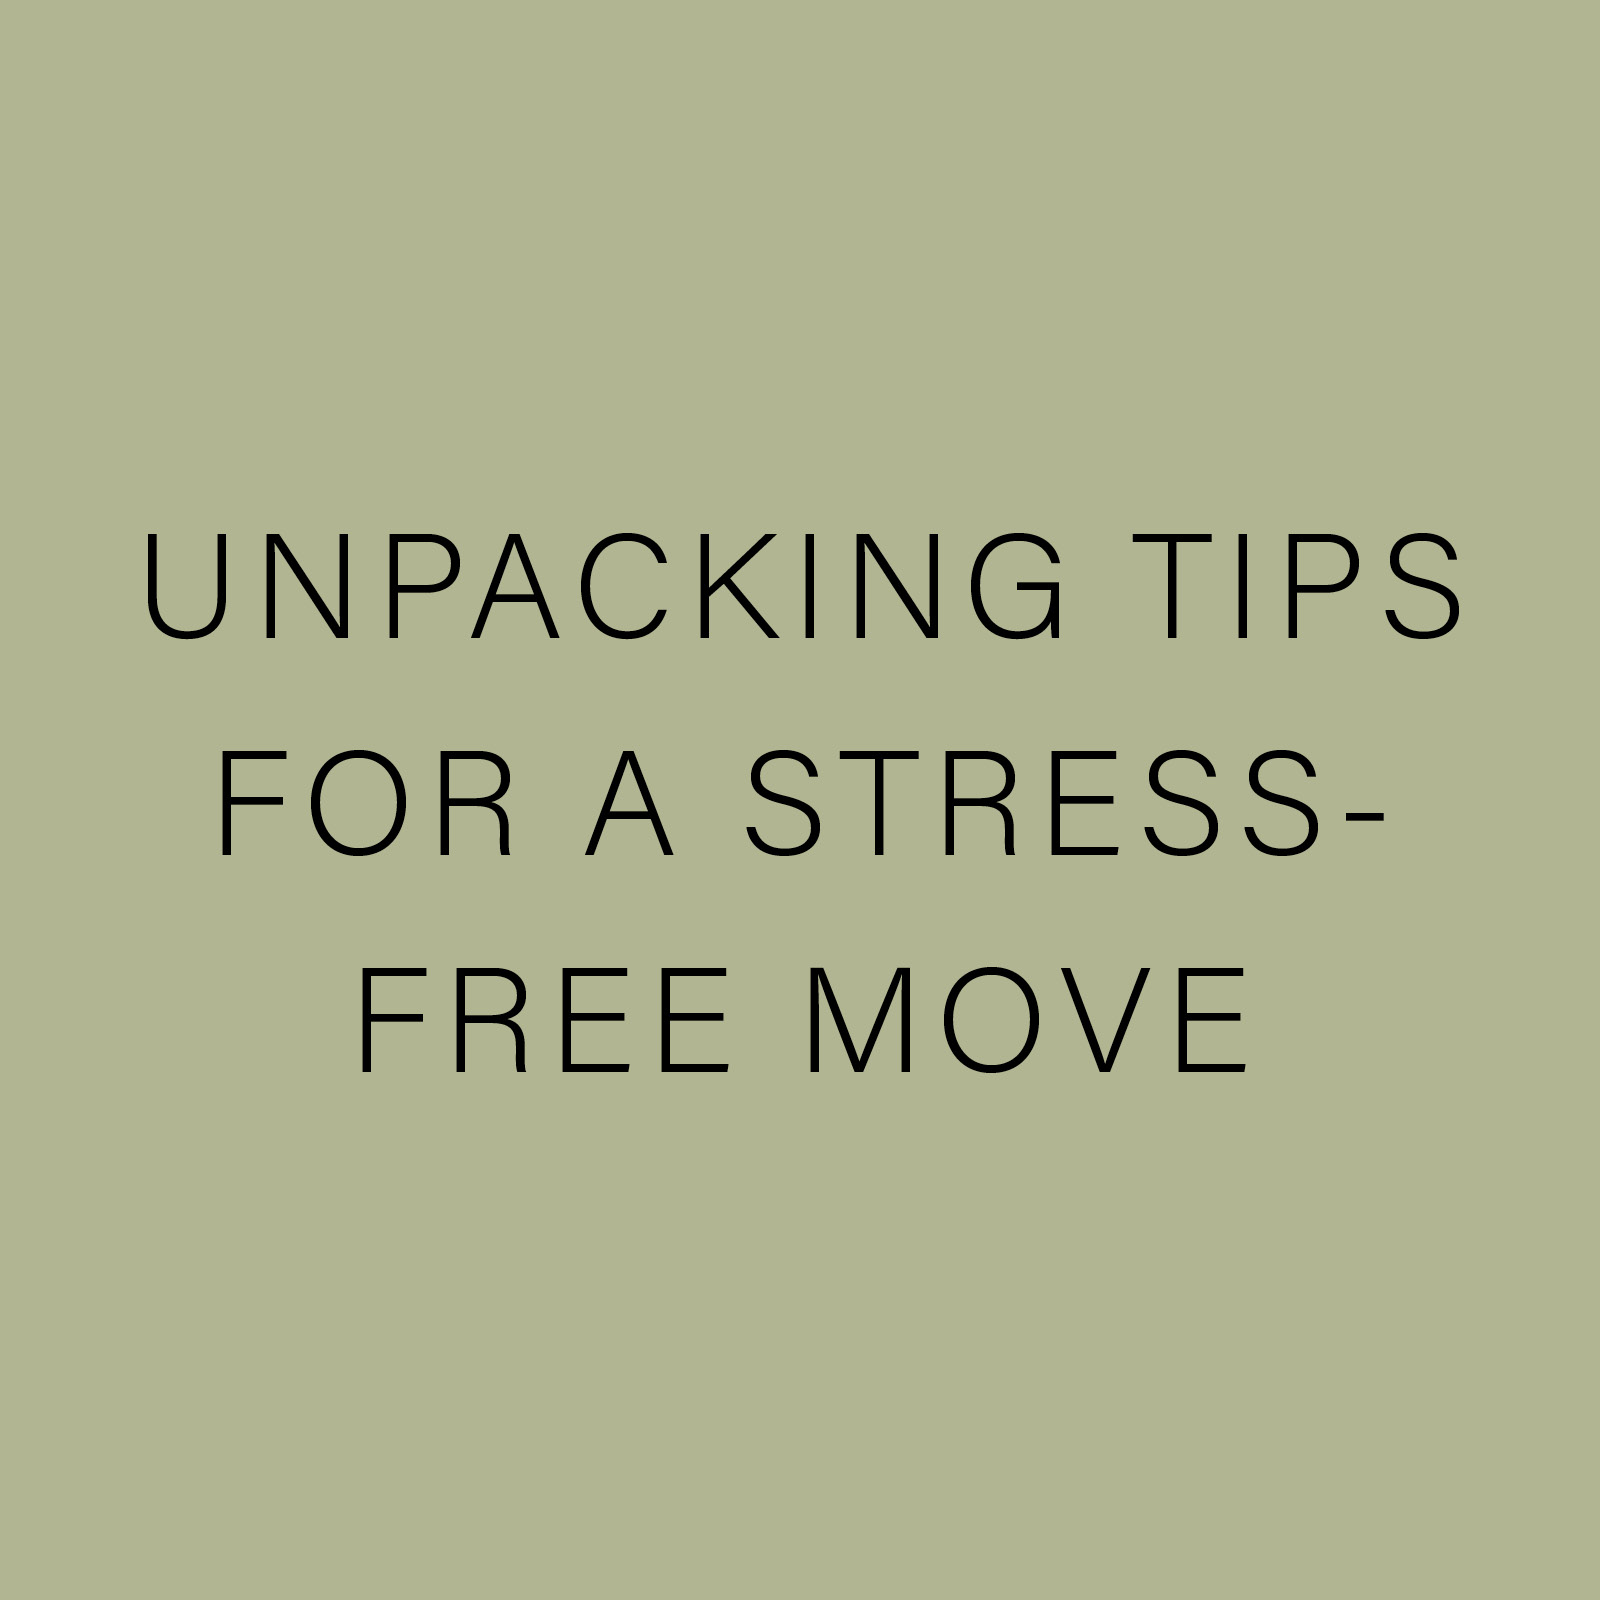 UNPACKING TIPS FOR A STRESS-FREE MOVE.jpg